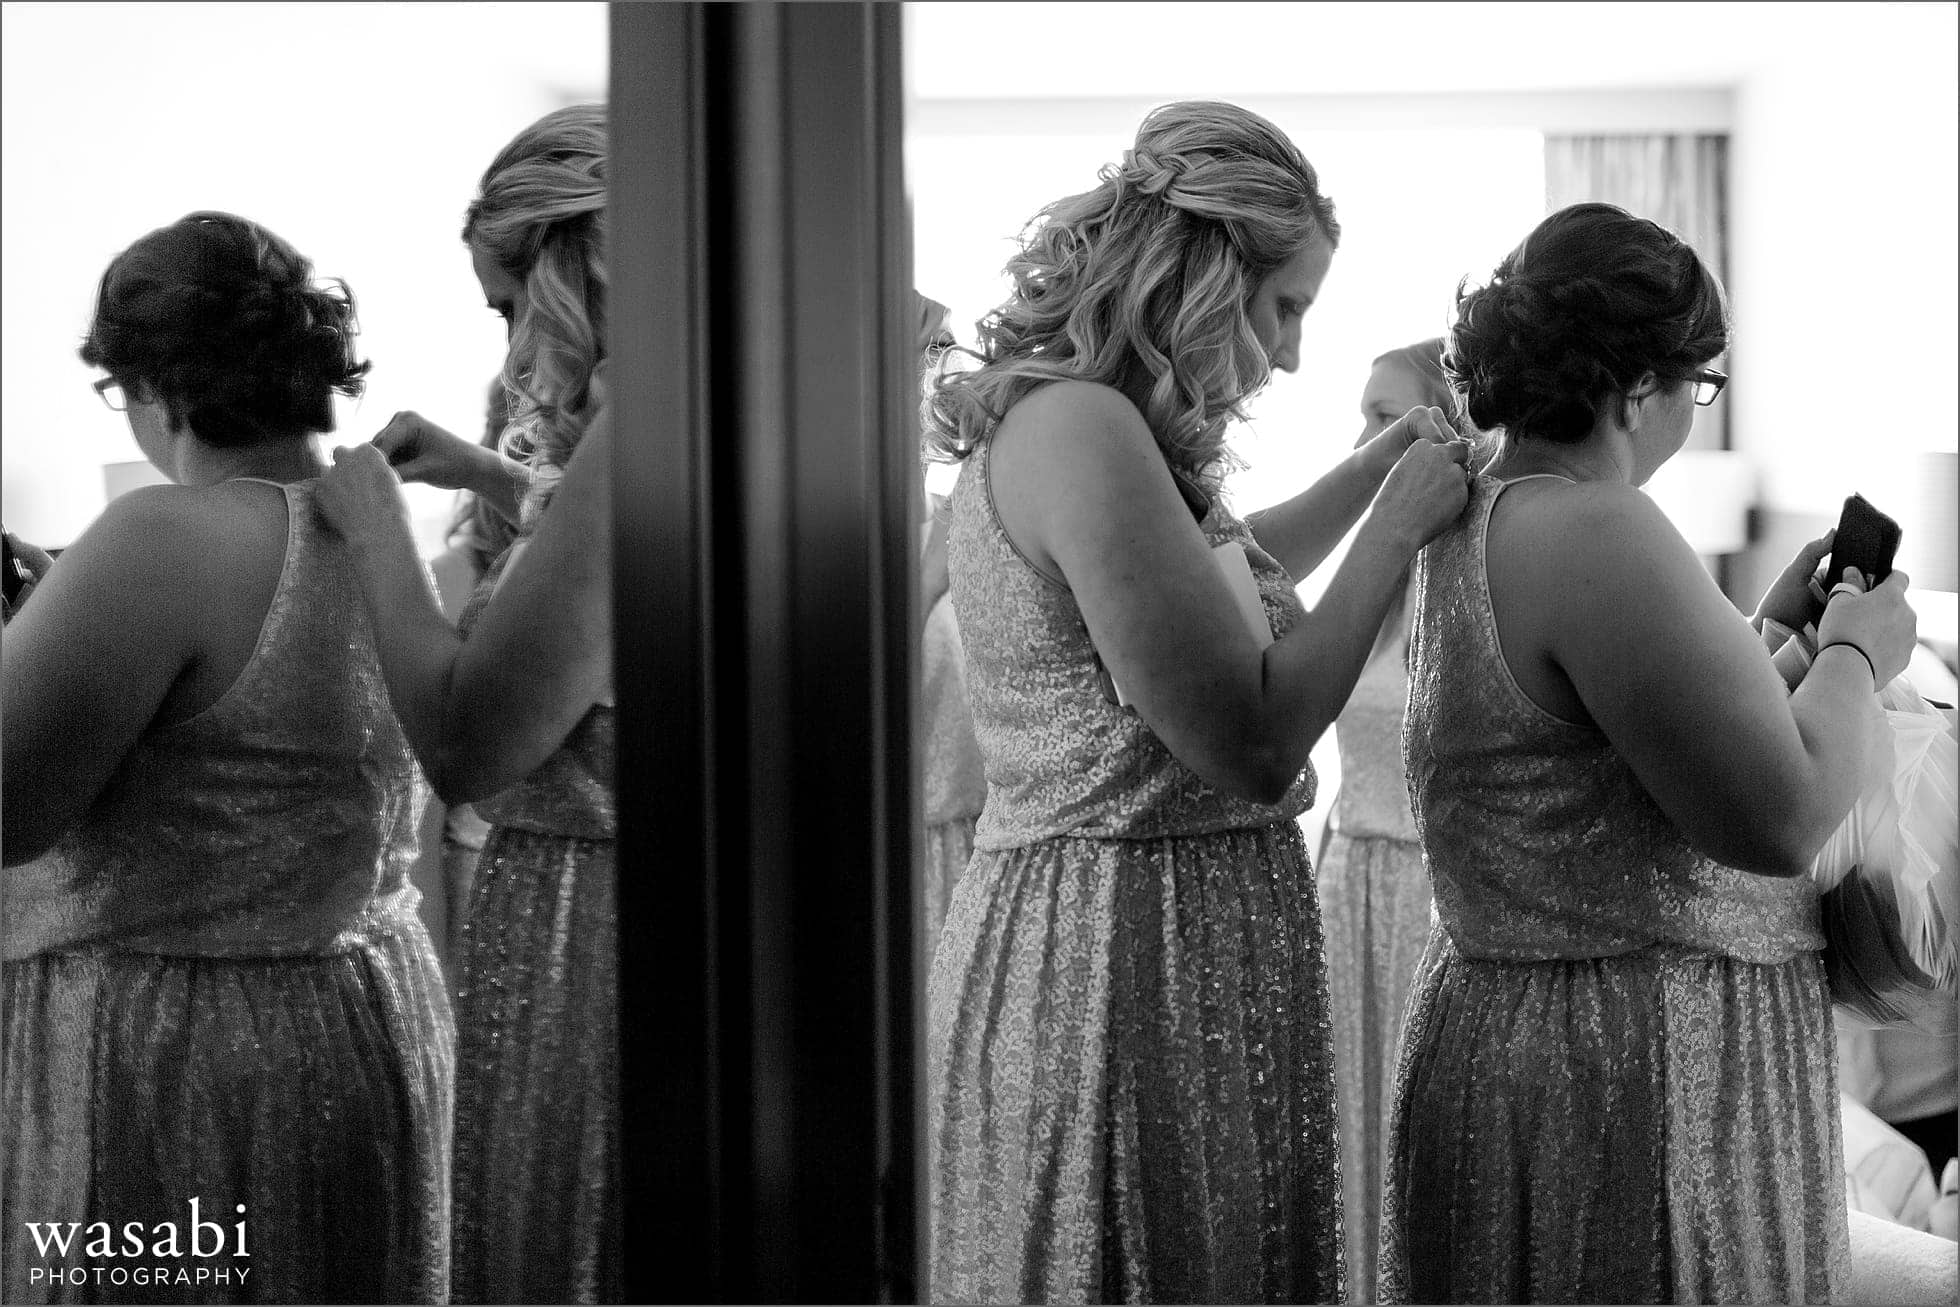 bridesmaids help each other get ready putting on dresses for a wedding at Lombard Westin Hotel